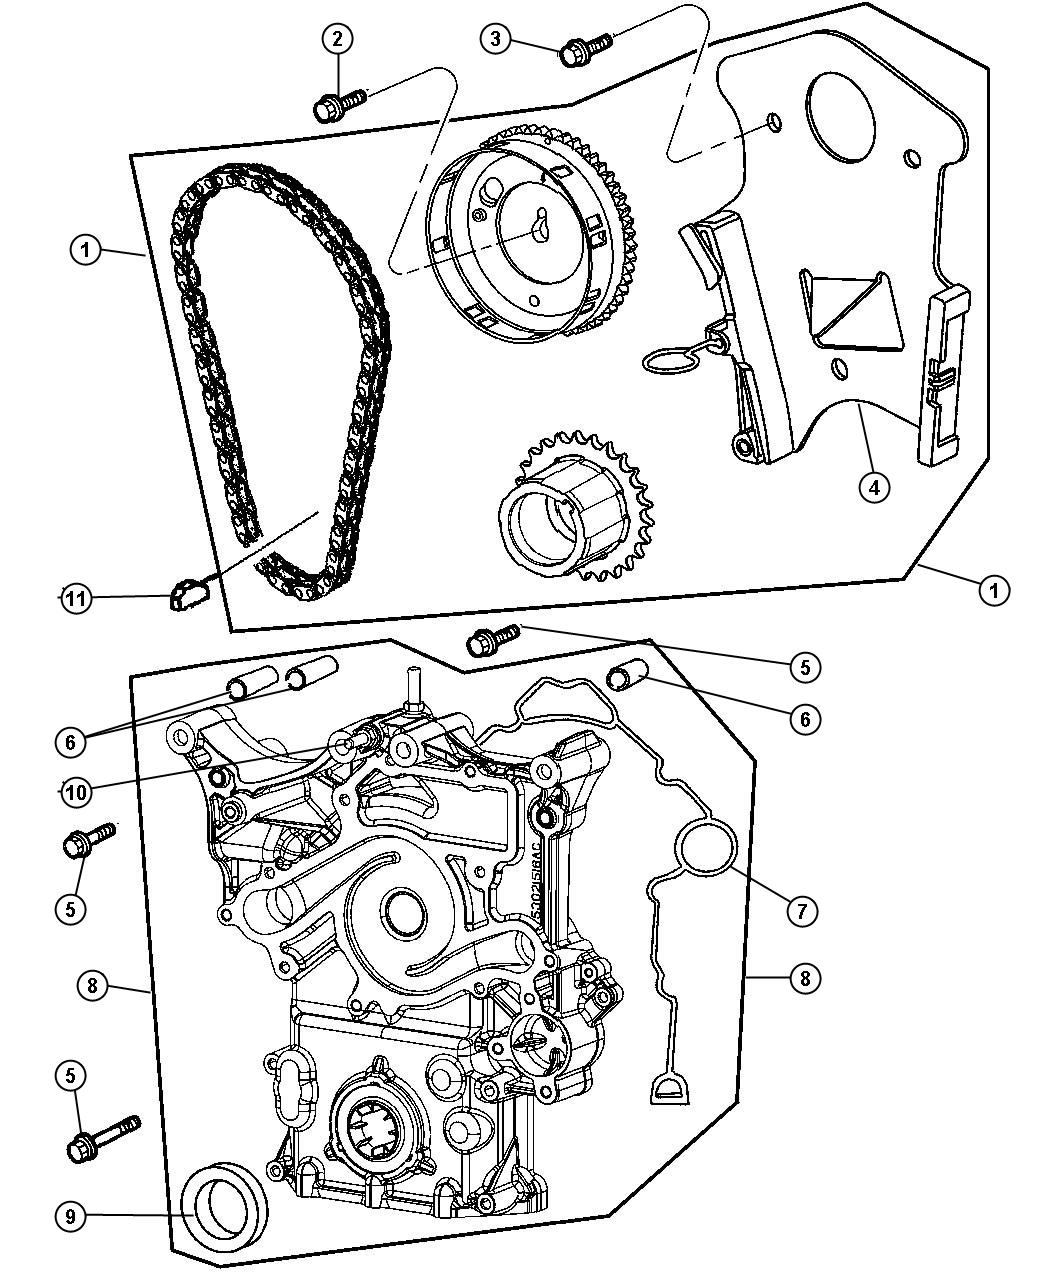 Jeep Commander Timing Chain And Related Parts 5 7l  5 7l